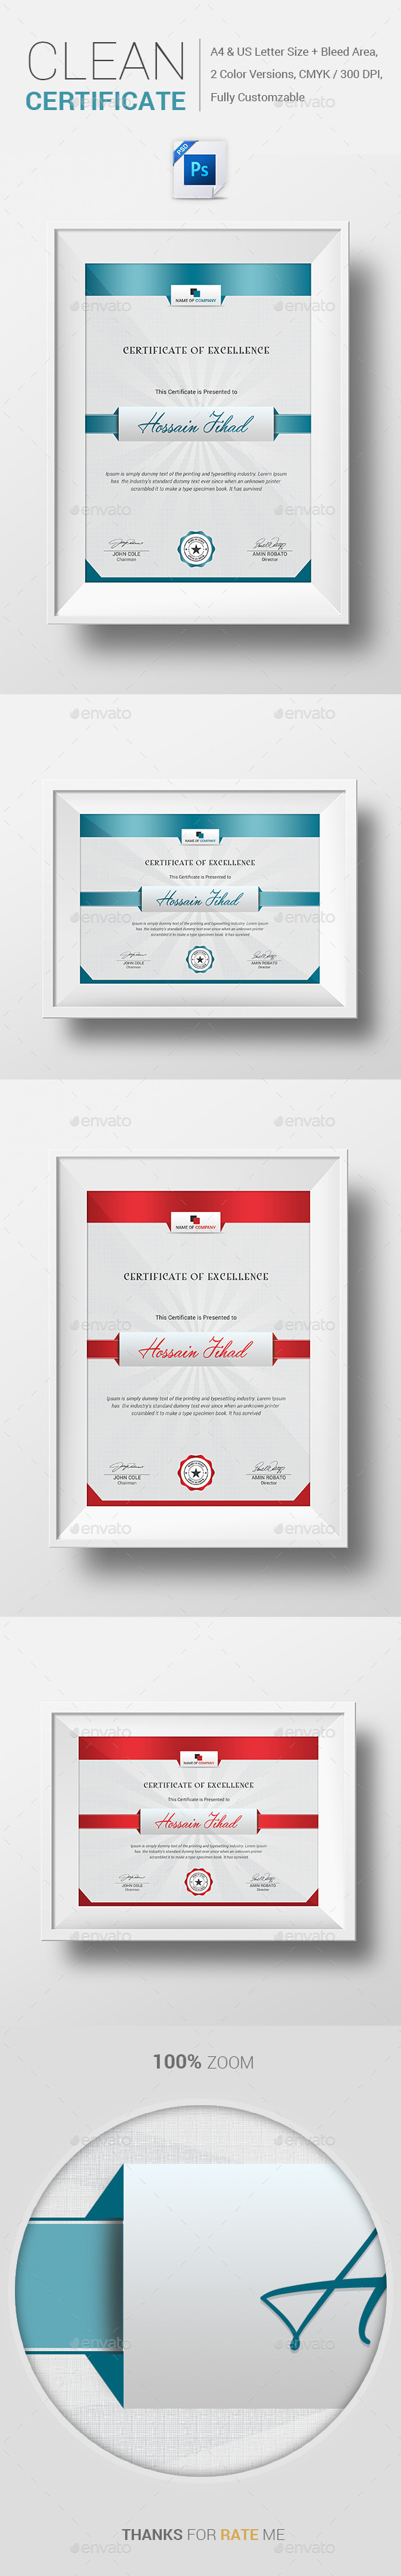 GraphicRiver Clean Certificate 10569000